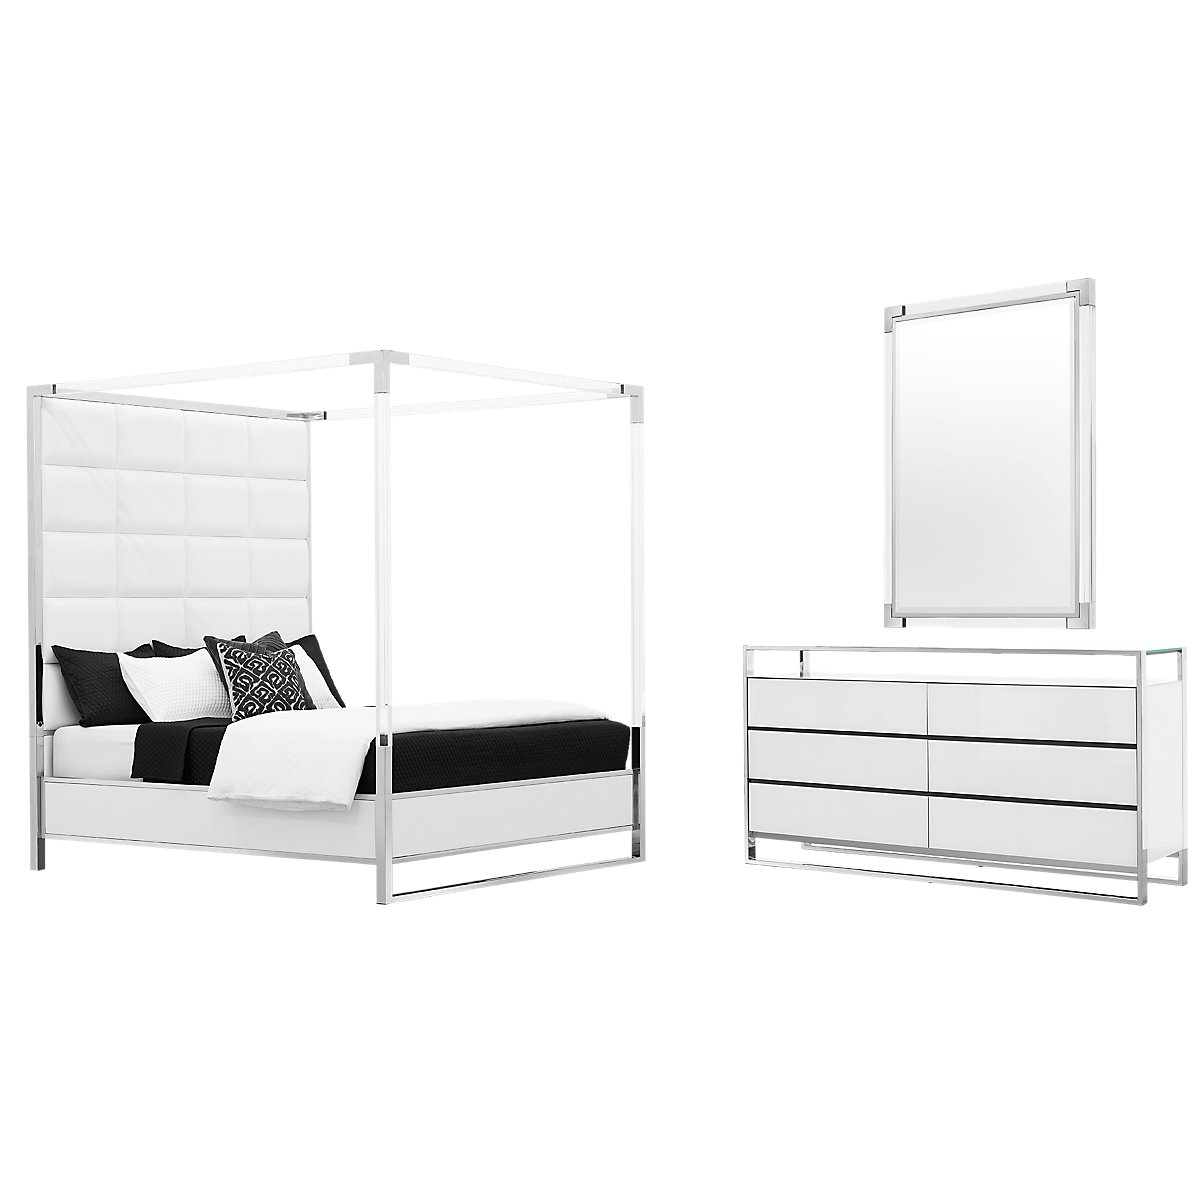 State Street White Metal Canopy Bedroom | Bedroom - Bedroom Sets ...